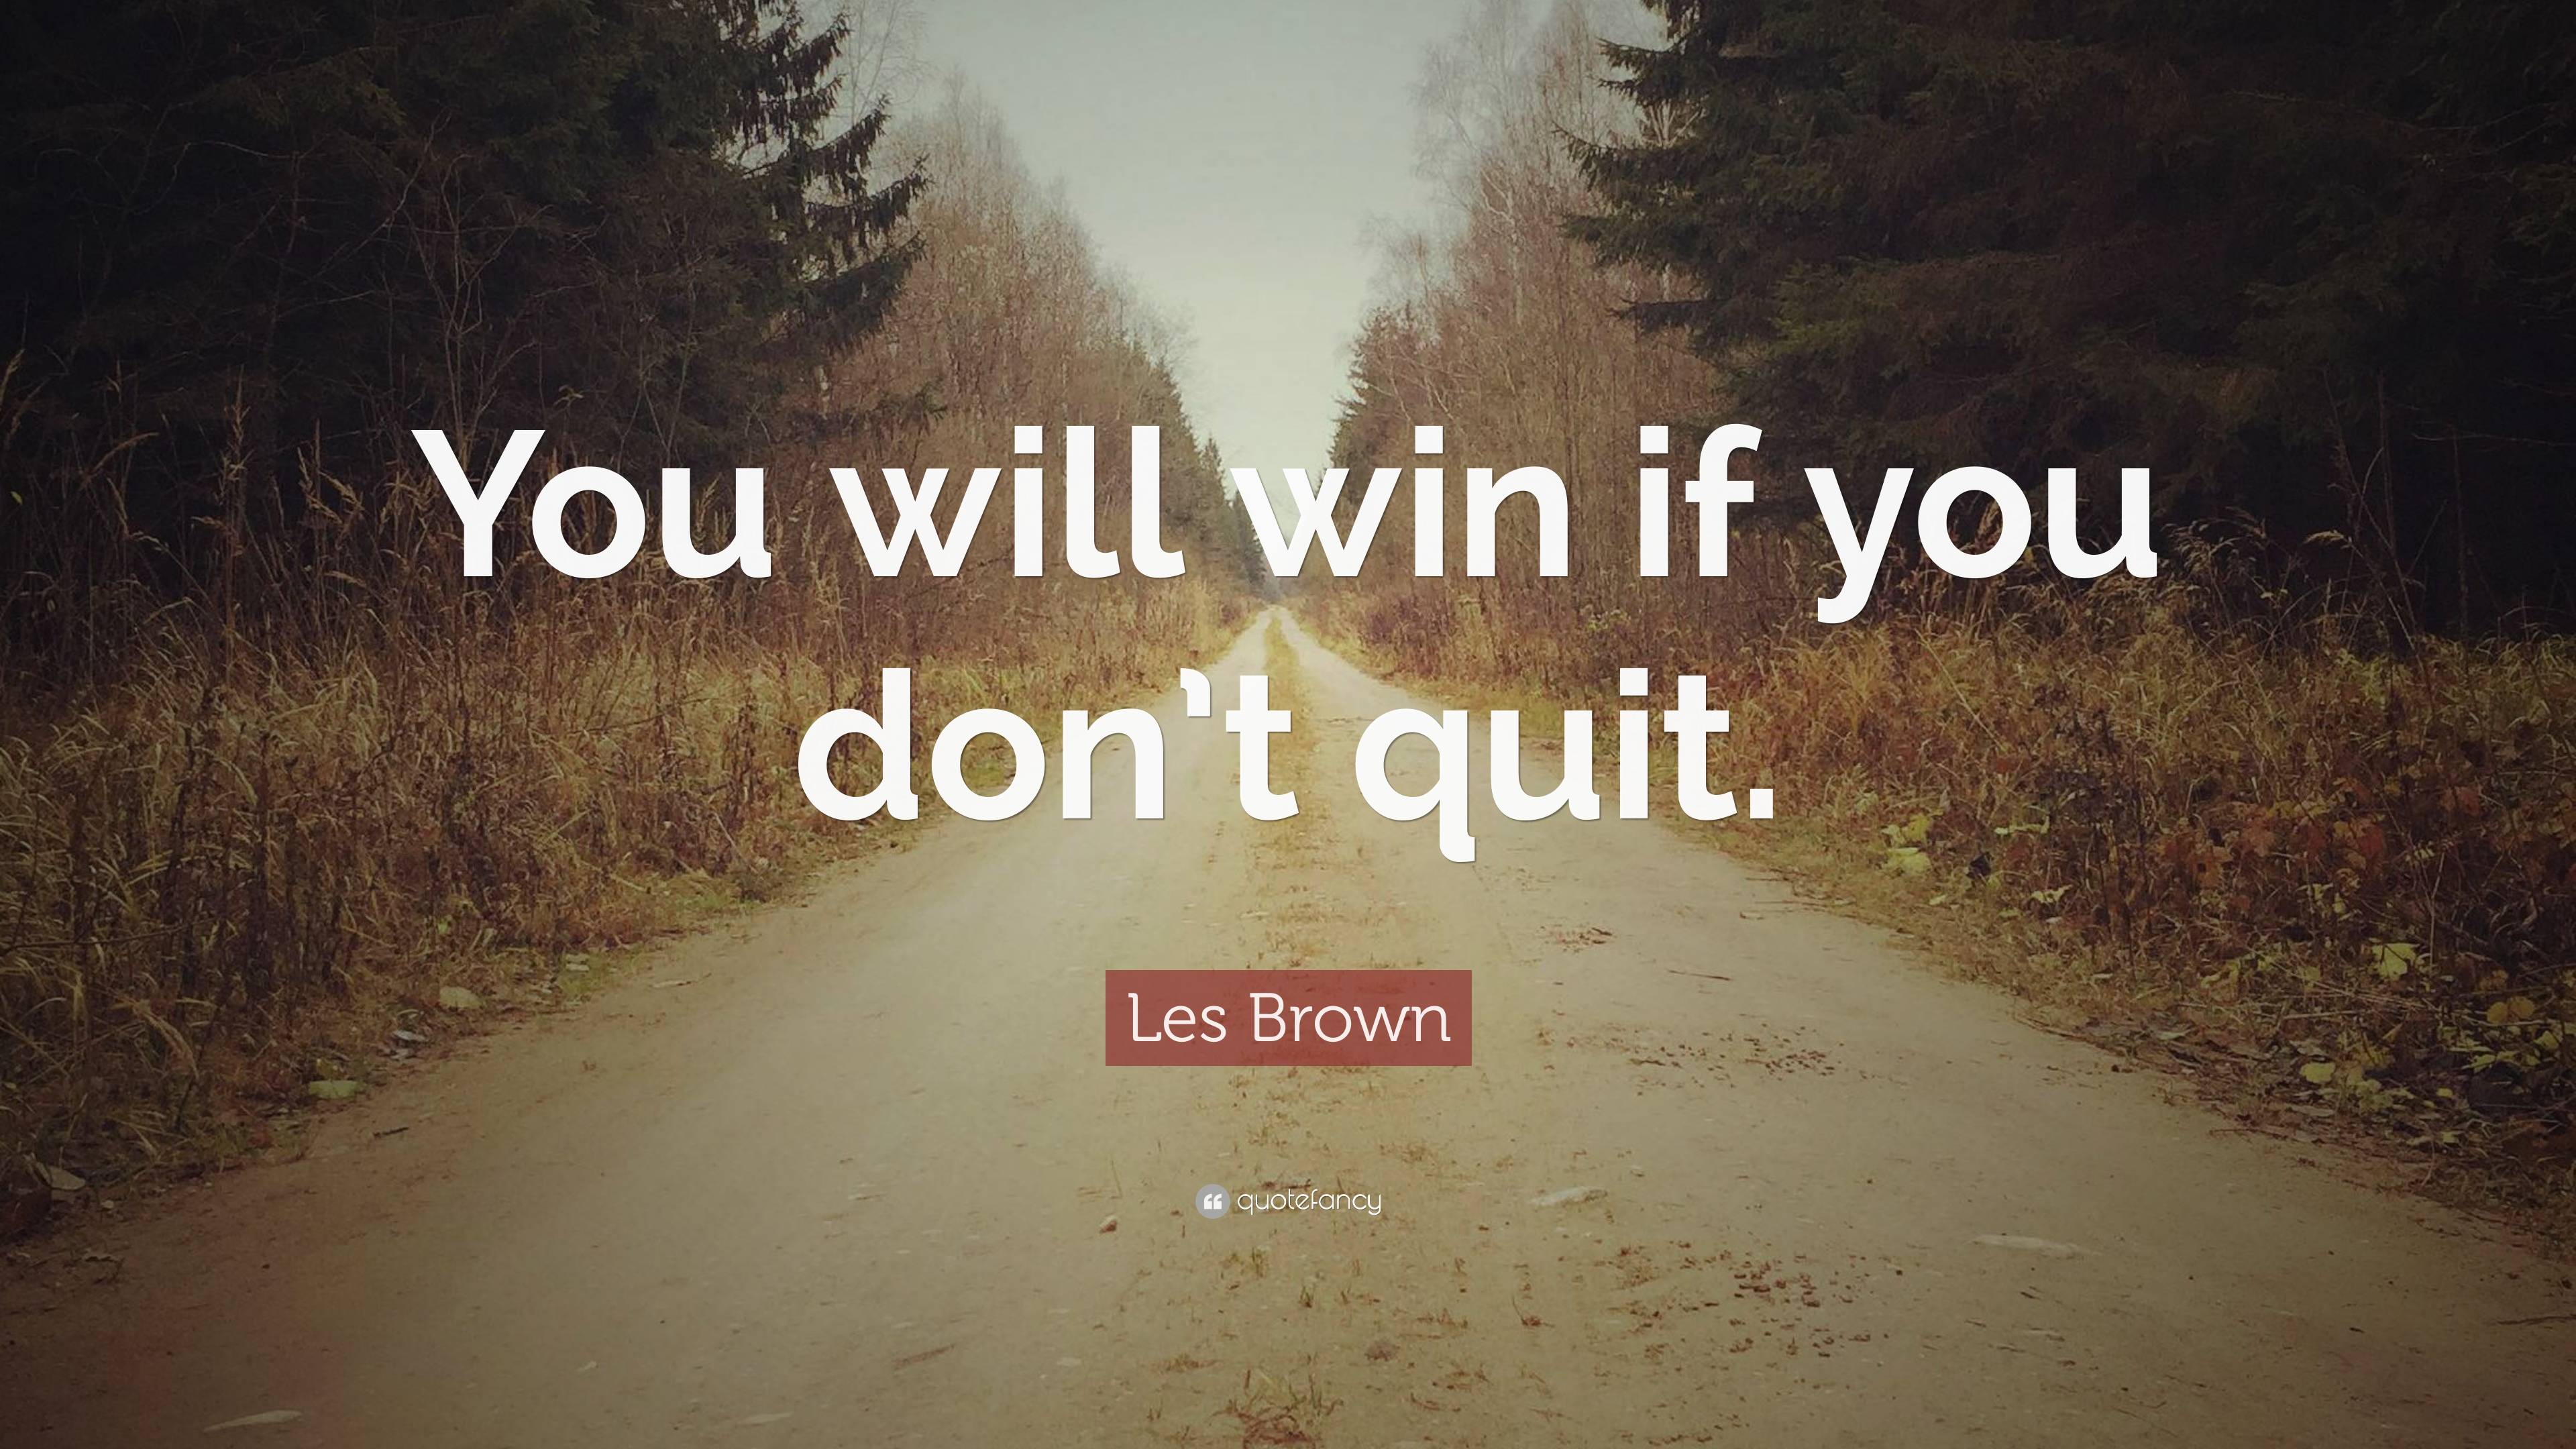 I Quit Quotes Wallpaper Les Brown Quote You Will Win If You Don T Quit 16